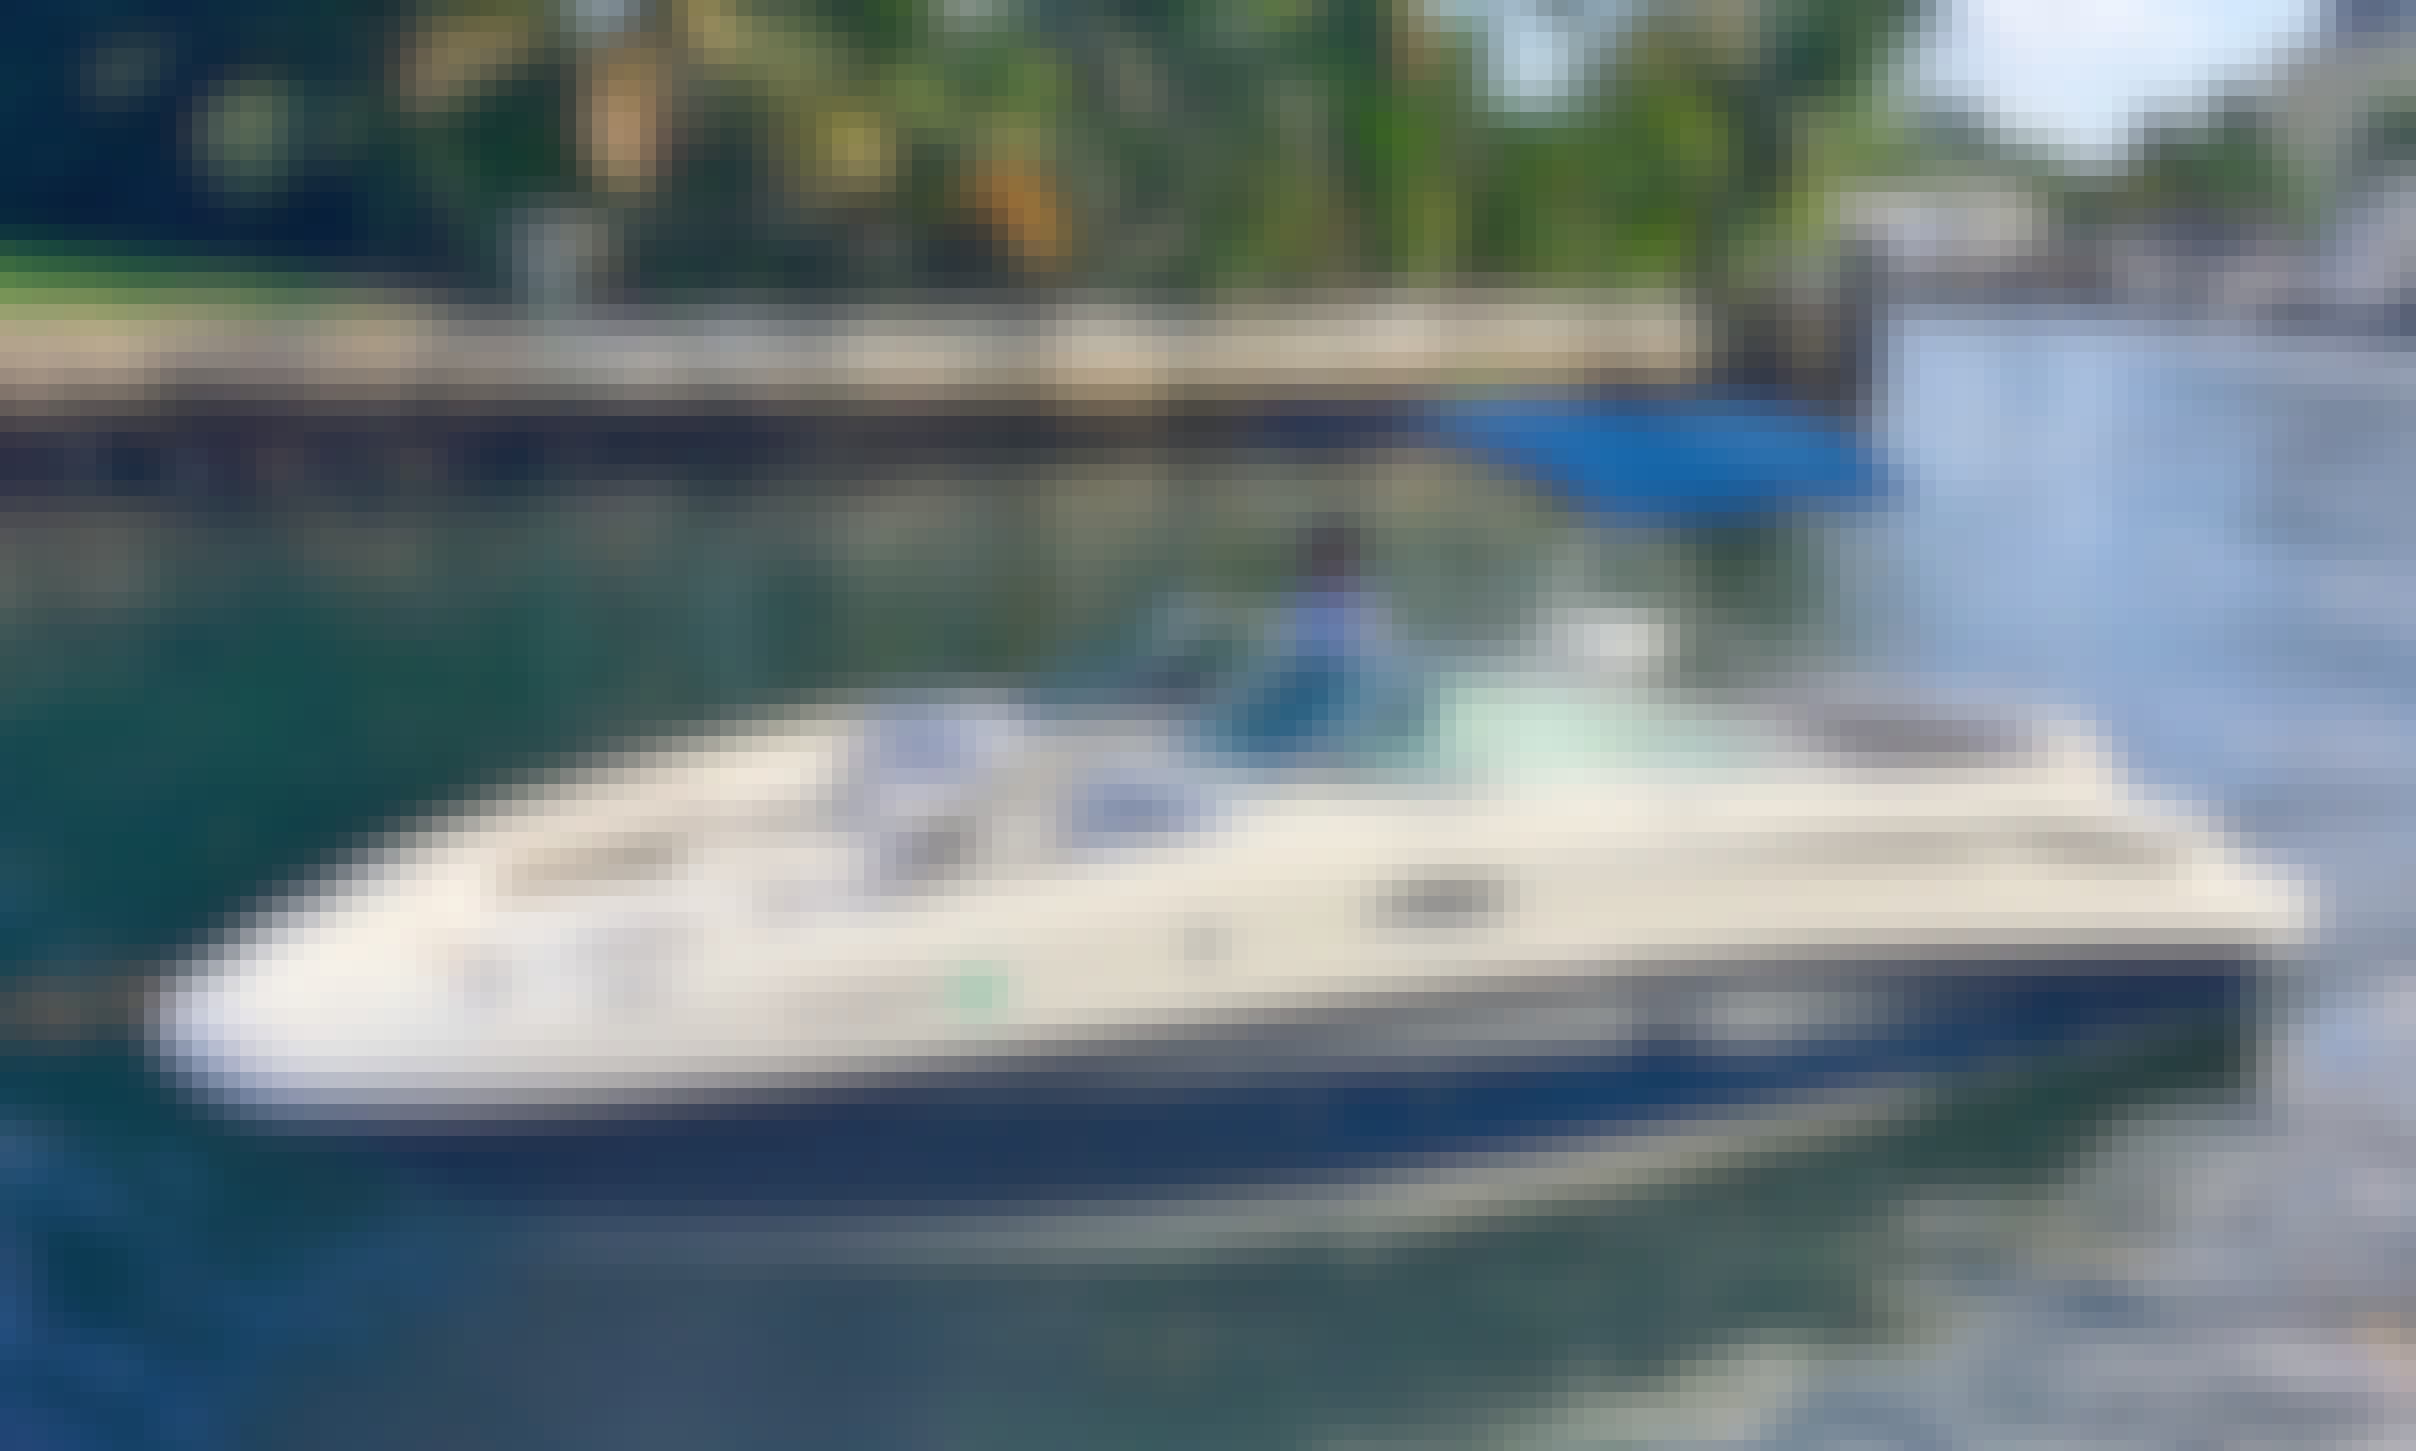 Sea Ray 26 ft. Party floats, BBQ & Drinks, watersports, tubing, tours..